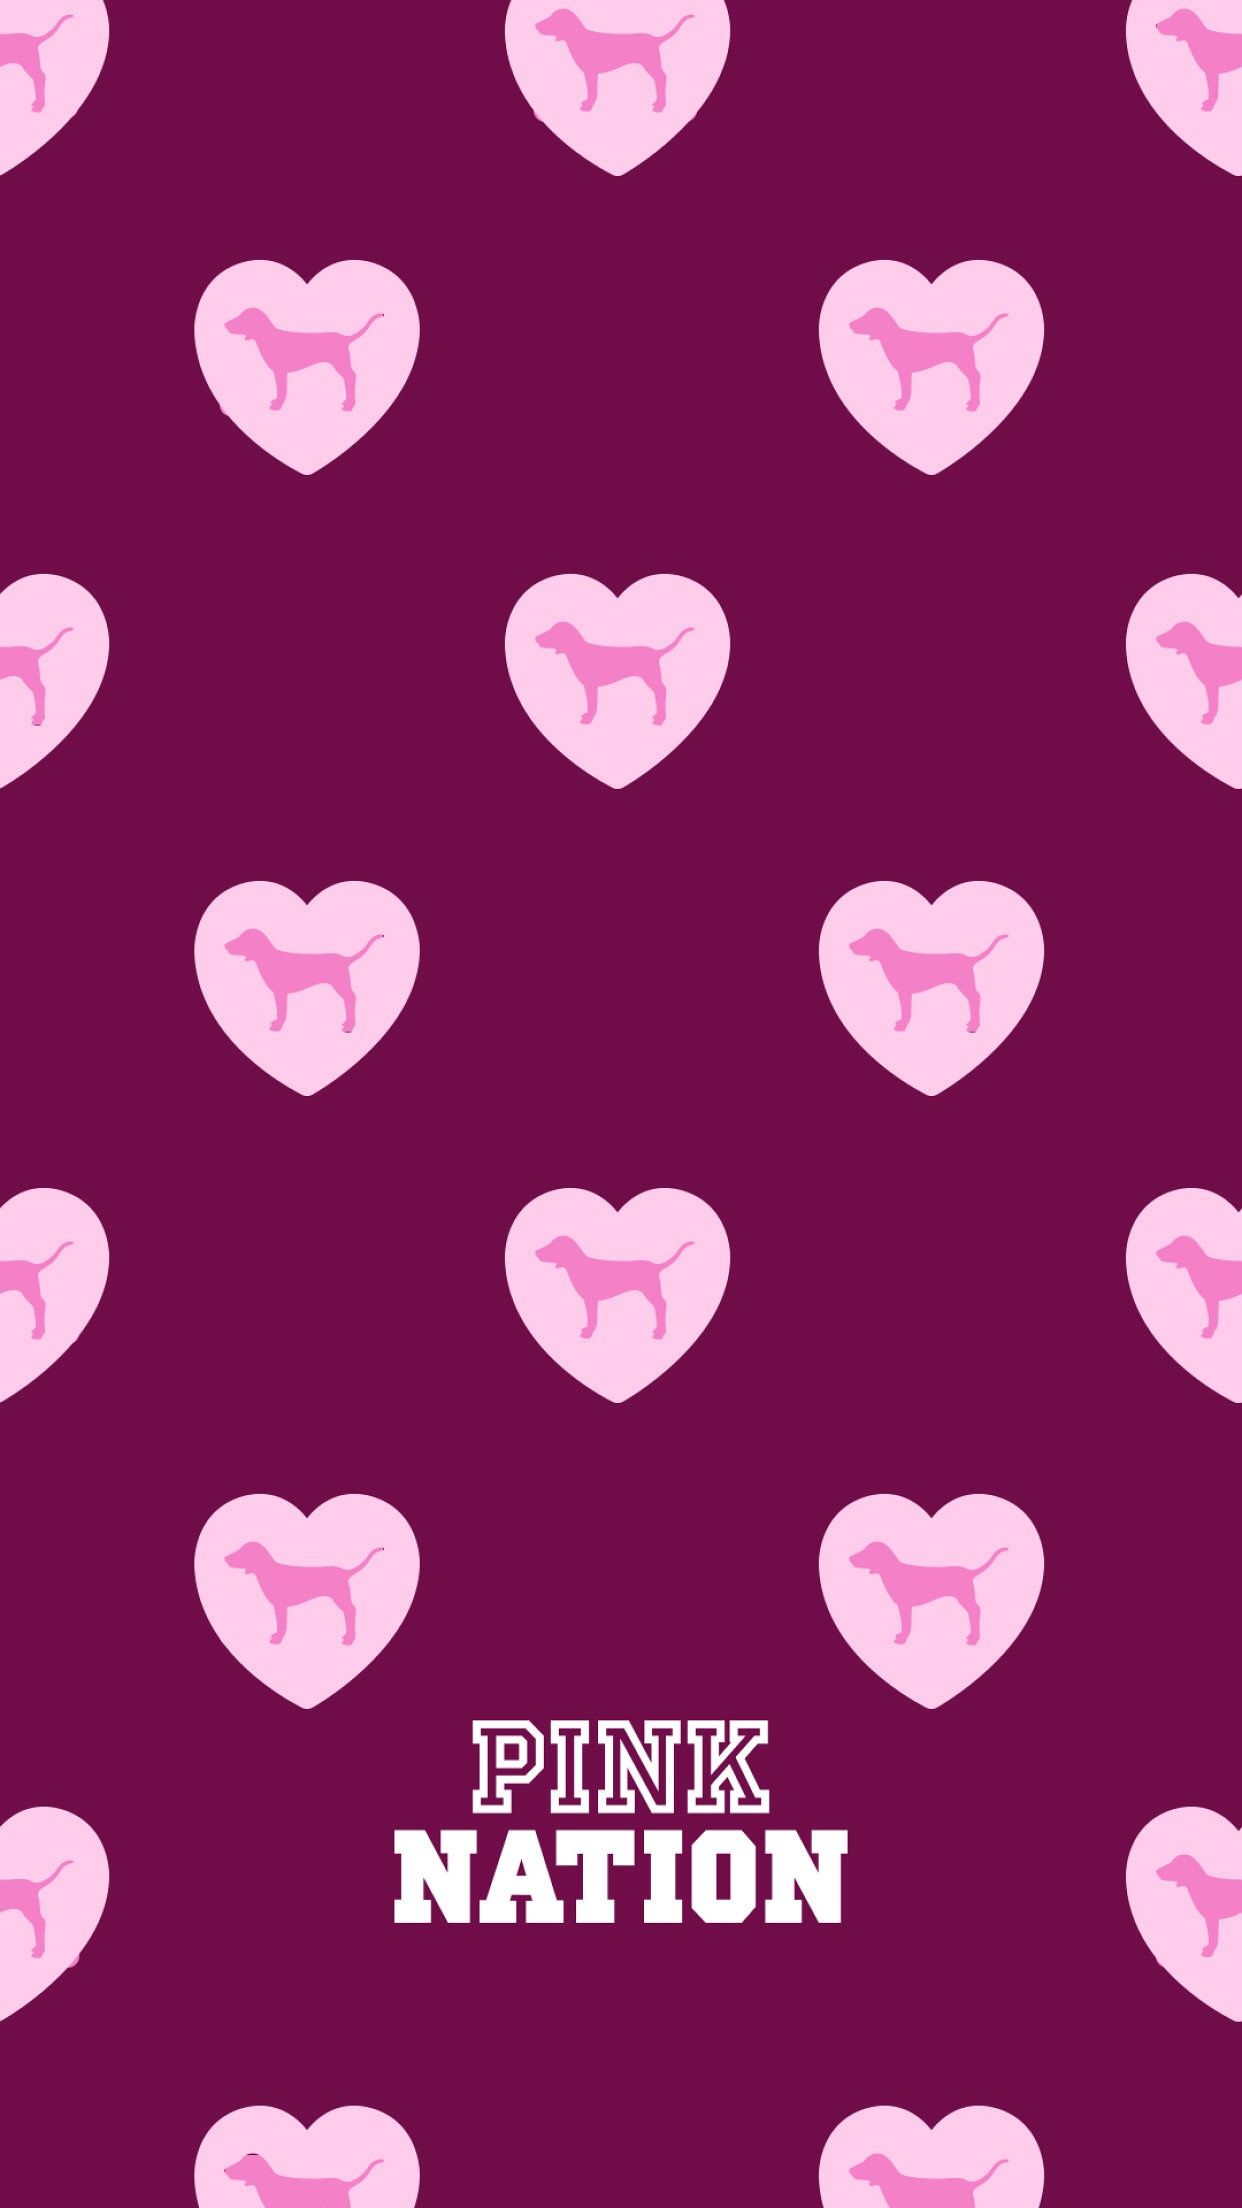 Pink Nation Wallpapers - Top Free Pink ...